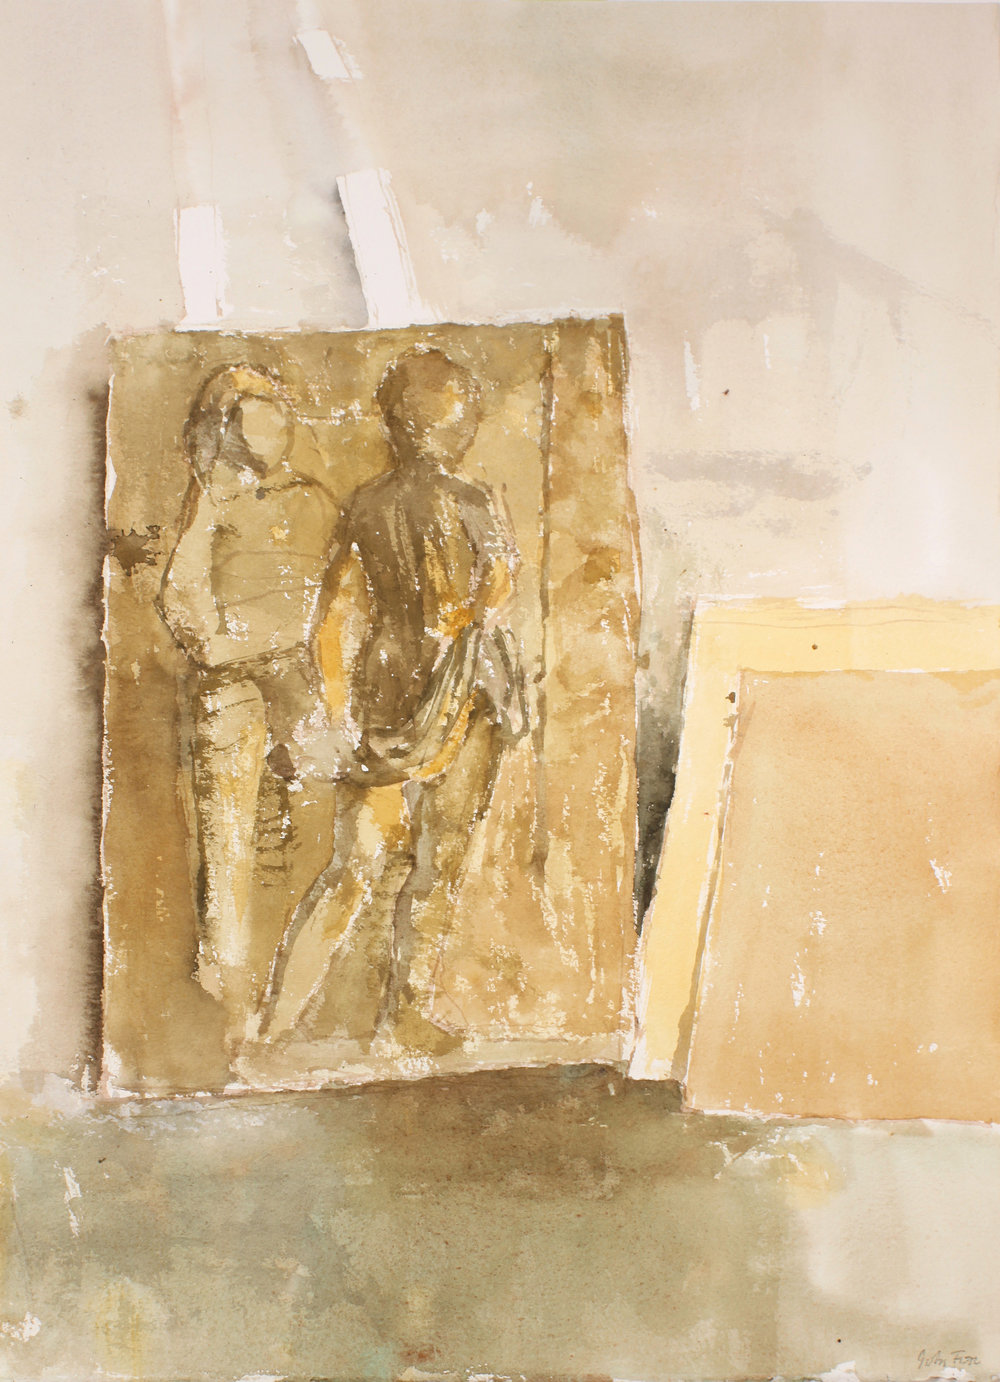 Relief Sculpture in Studio